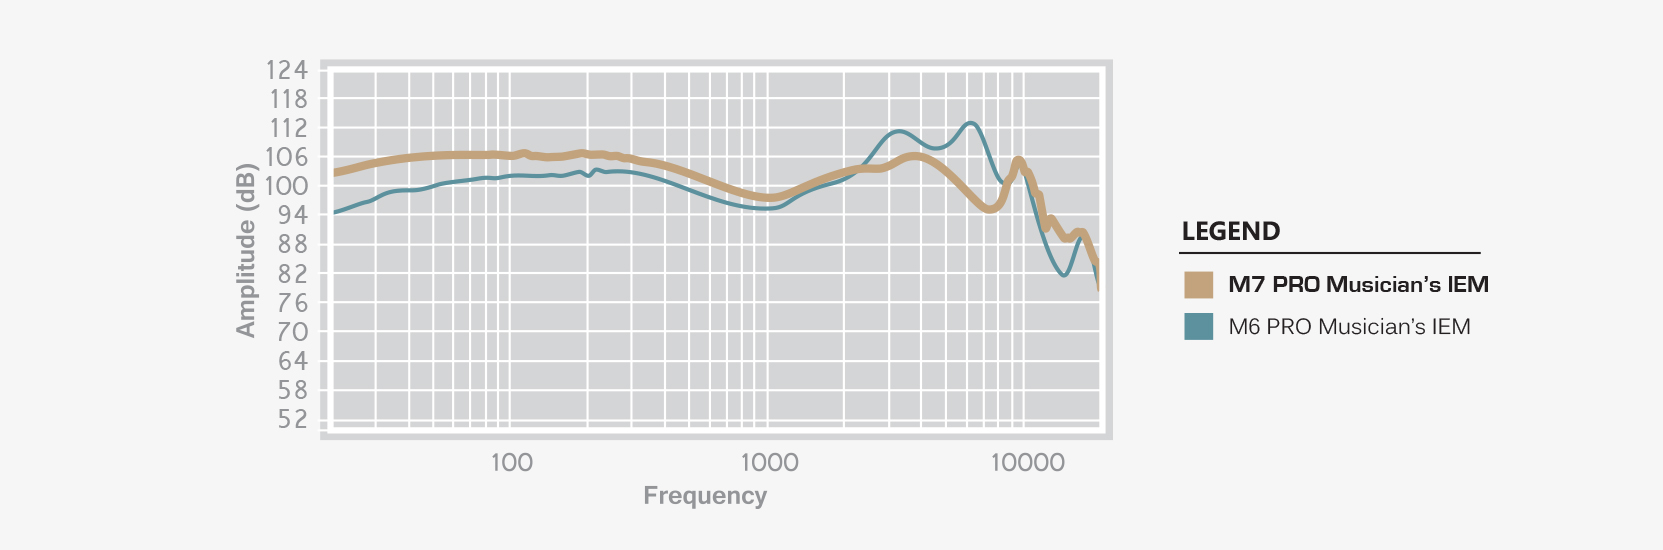 Frequency response chart comparing M7 PRO drummers monitors to the M6 PRO IEM